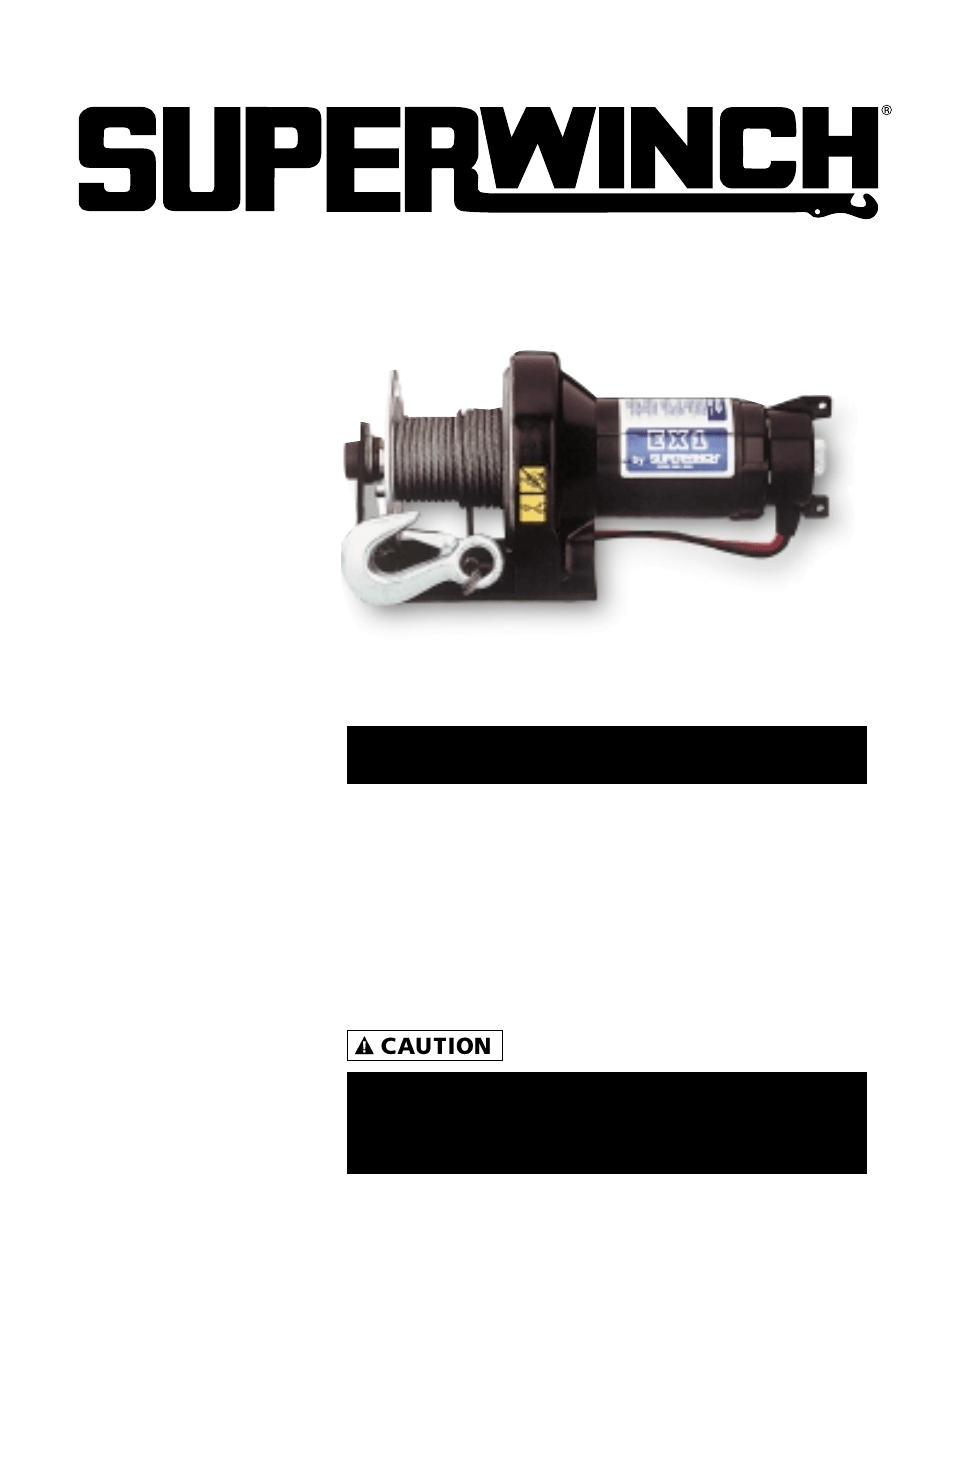 hight resolution of superwinch ex1 453 kgs 12v 1110 user manual 48 pages rh manualsdir com at